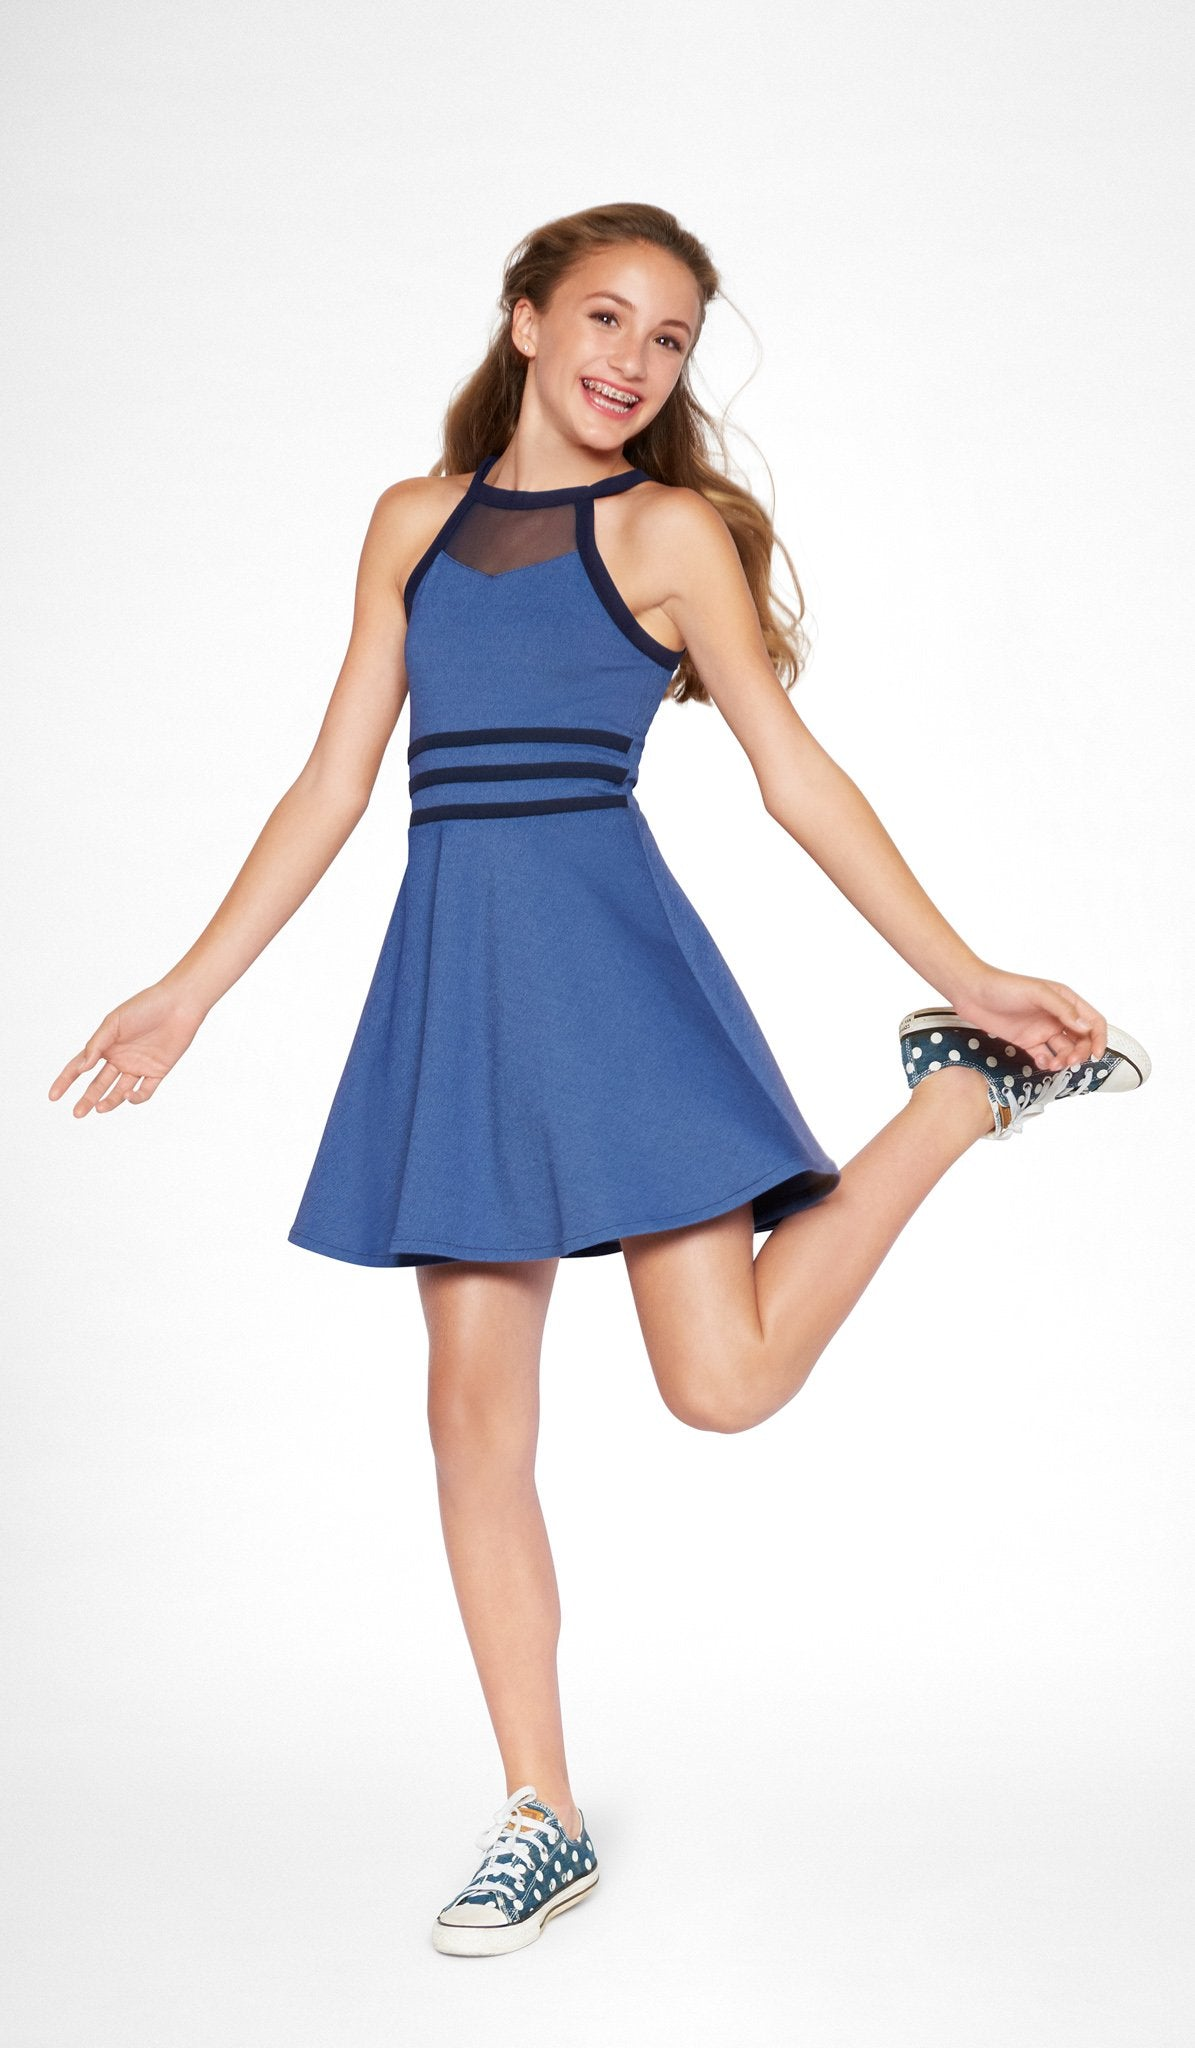 THE BELLA DRESS - Sallymiller.com - [variant title] - | Event & Party Dresses for Tween Girls & Juniors | Weddings Dresses, Bat Mitzvah Dresses, Sweet Sixteen Dresses, Graduation Dresses, Birthday Party Dresses, Bar Mitzvah Dresses, Cotillion Dresses